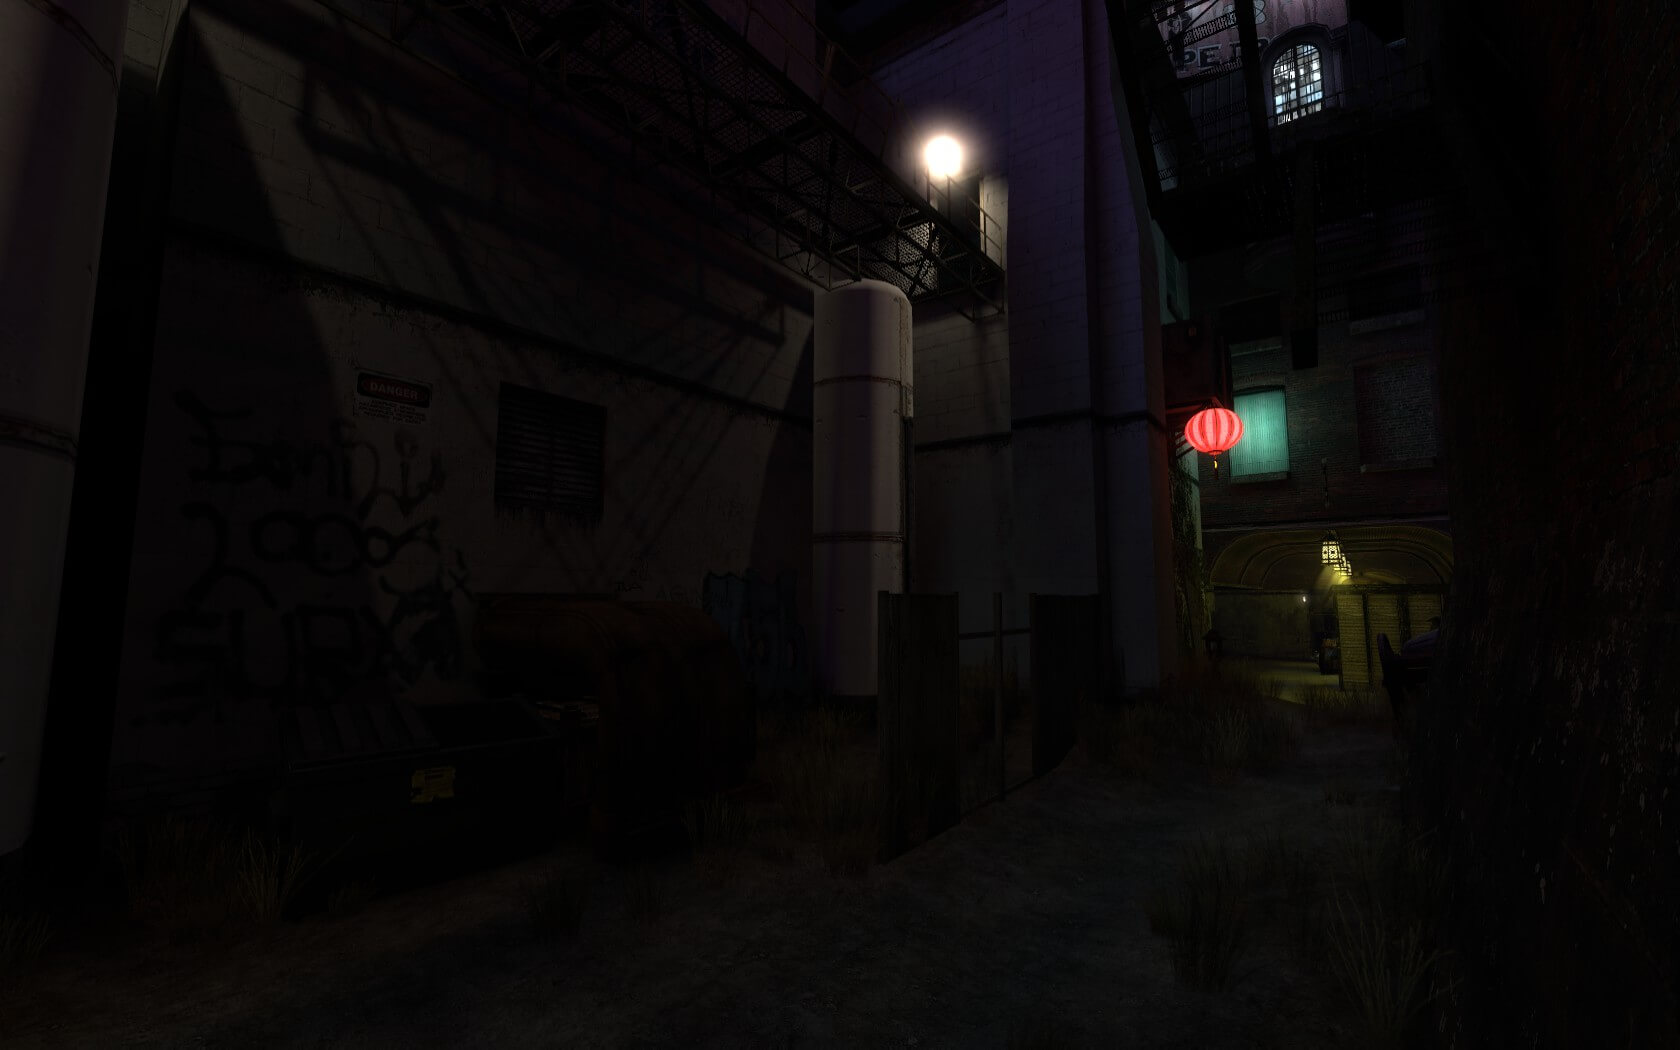 Another shot of the back alley route leaving the Red spawn, but facing it this time. Note the ventilation route hinted at to the left.